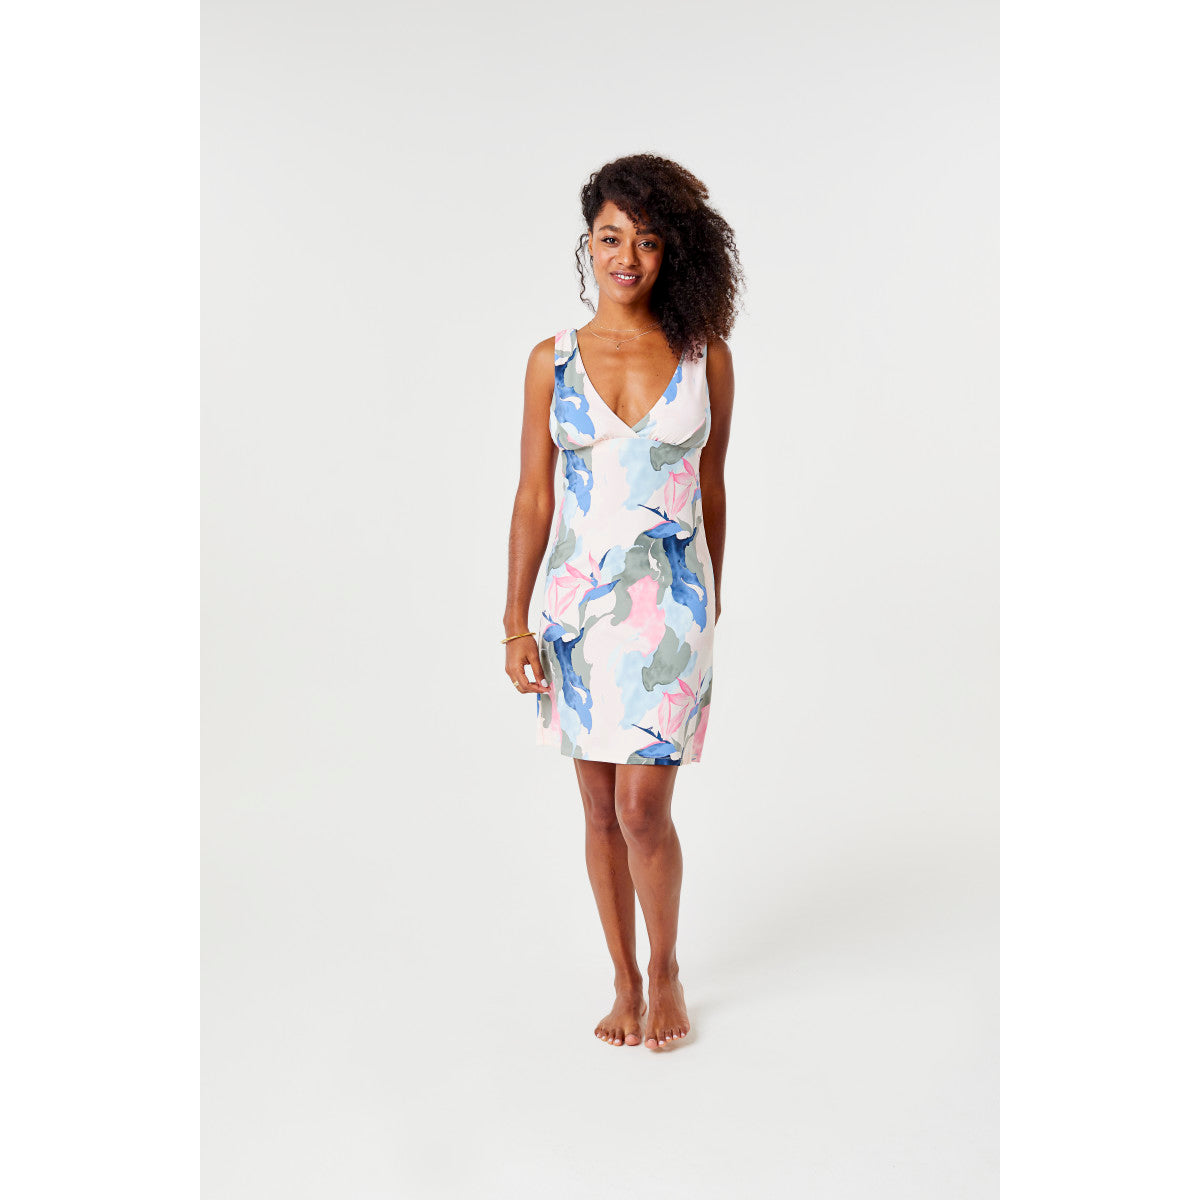 Carve Designs Cayman Dress - Sale